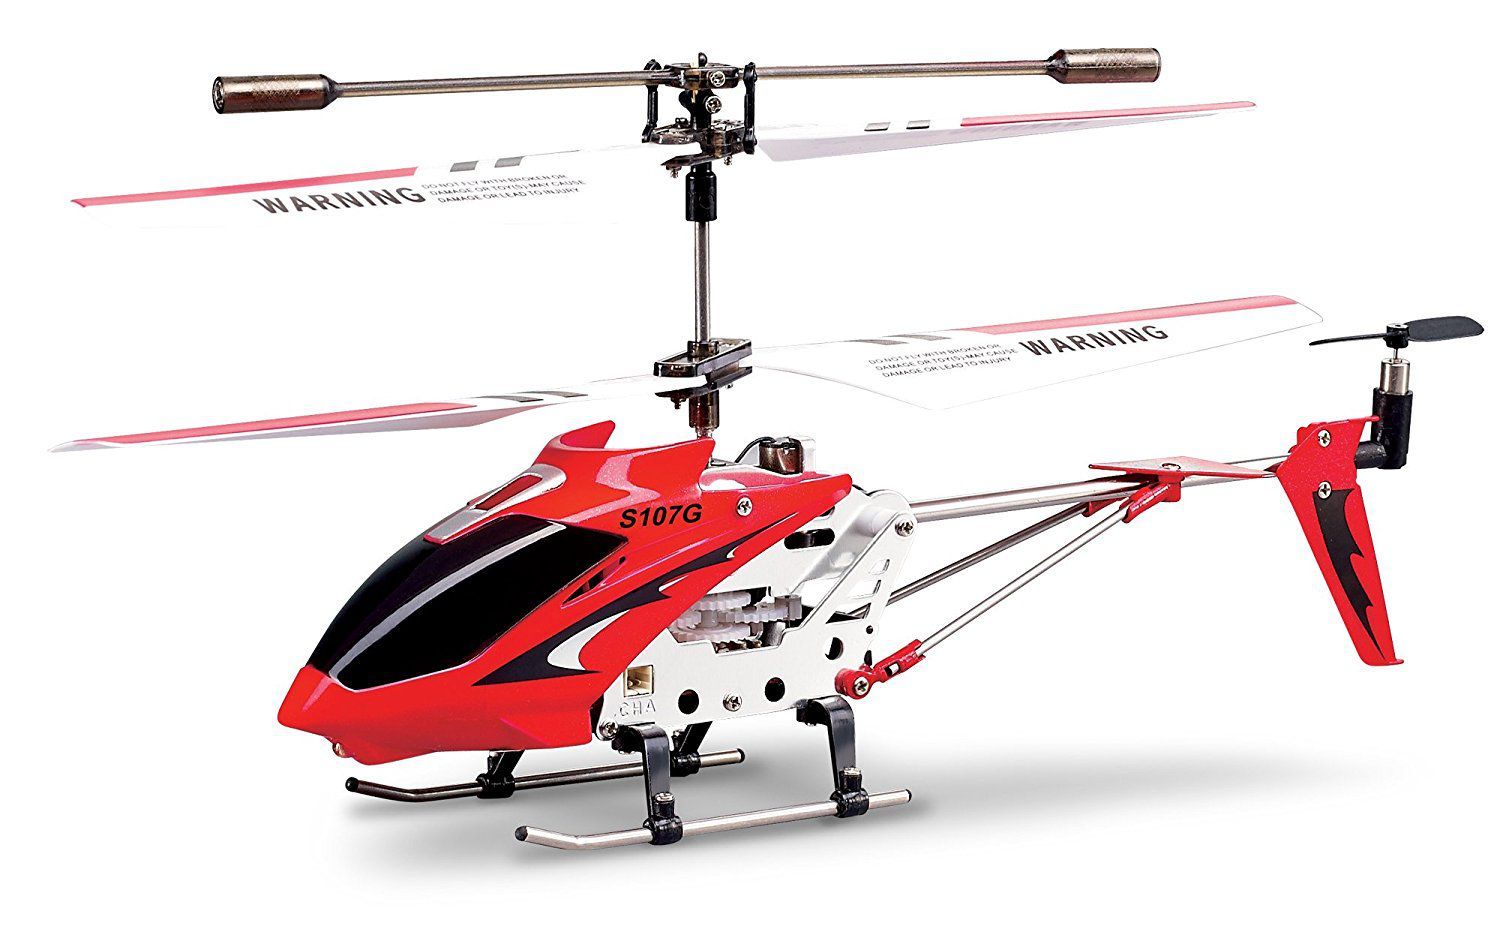 syma s107 rc helicopter with Best Remote Control Helicopters 4155645 on Watch in addition Syma Helicopter Parts likewise 1360409117 as well 282281390661 moreover MLM 563561970 Helicoptero De Juguete Syma S107s107g Rc  JM.